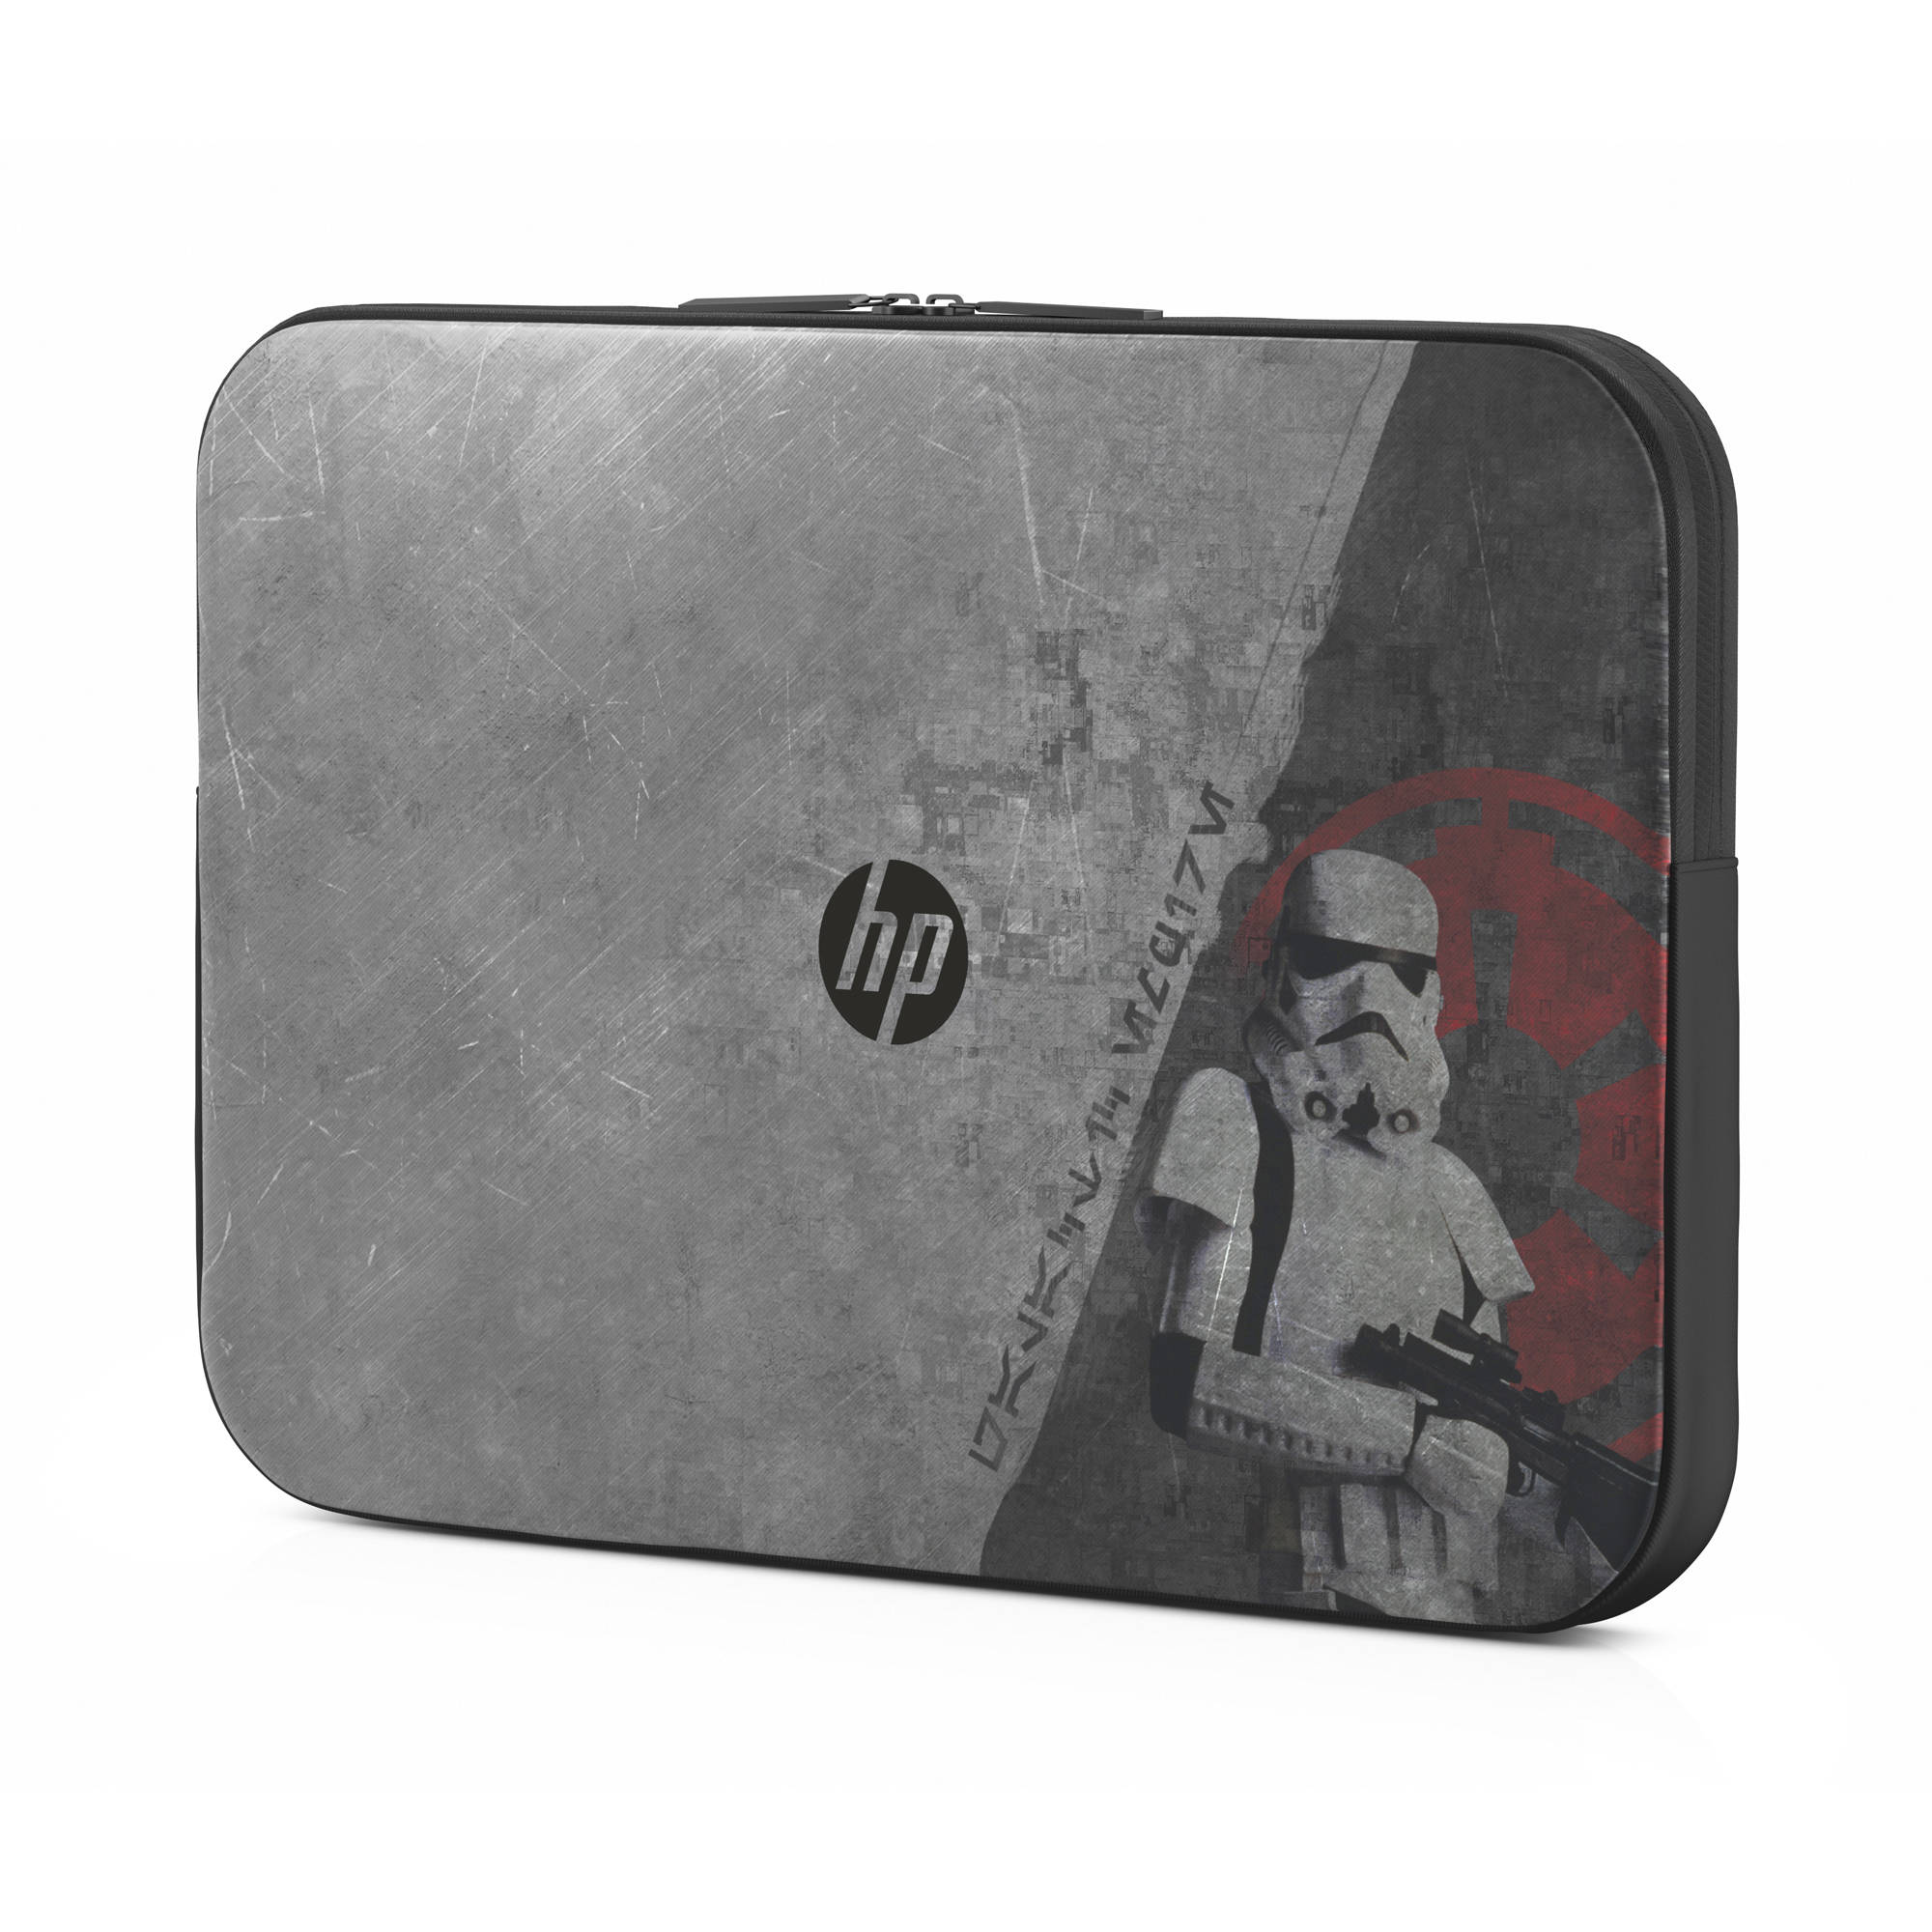 HP Star Wars Special Edition Sleeve, Fits Most Laptops Up to 15.6""